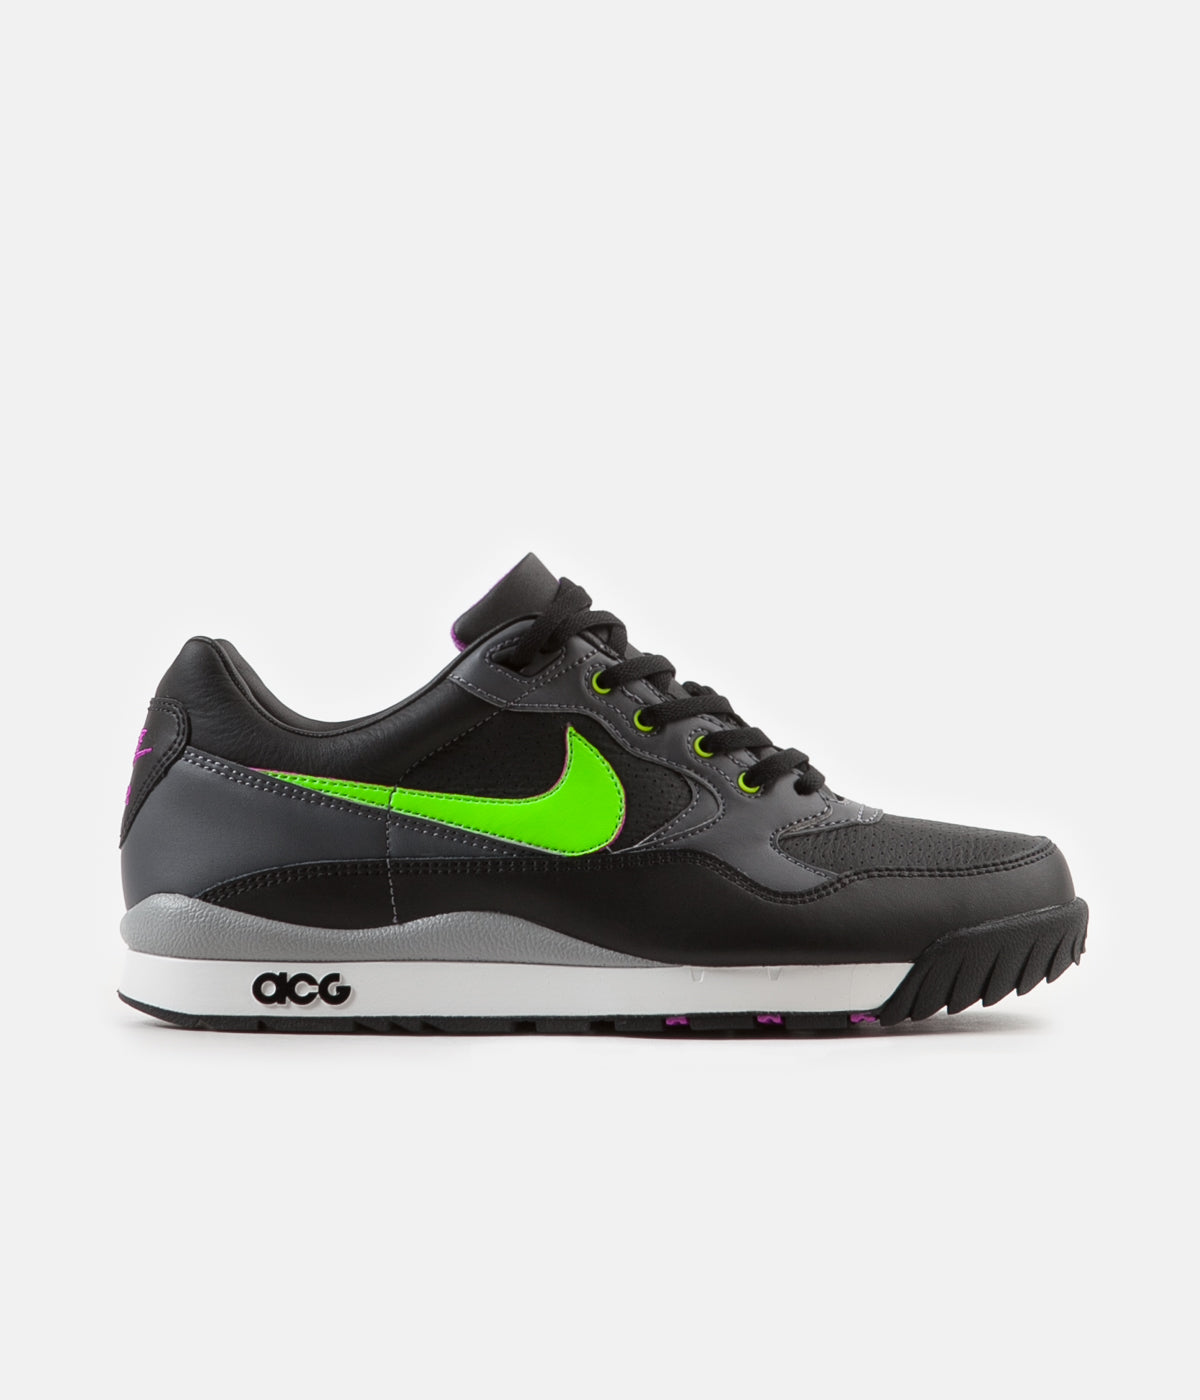 99386956a9bf1 ... Nike ACG Air Wildwood Shoes - Black   Electric Green - Hyper Violet ...